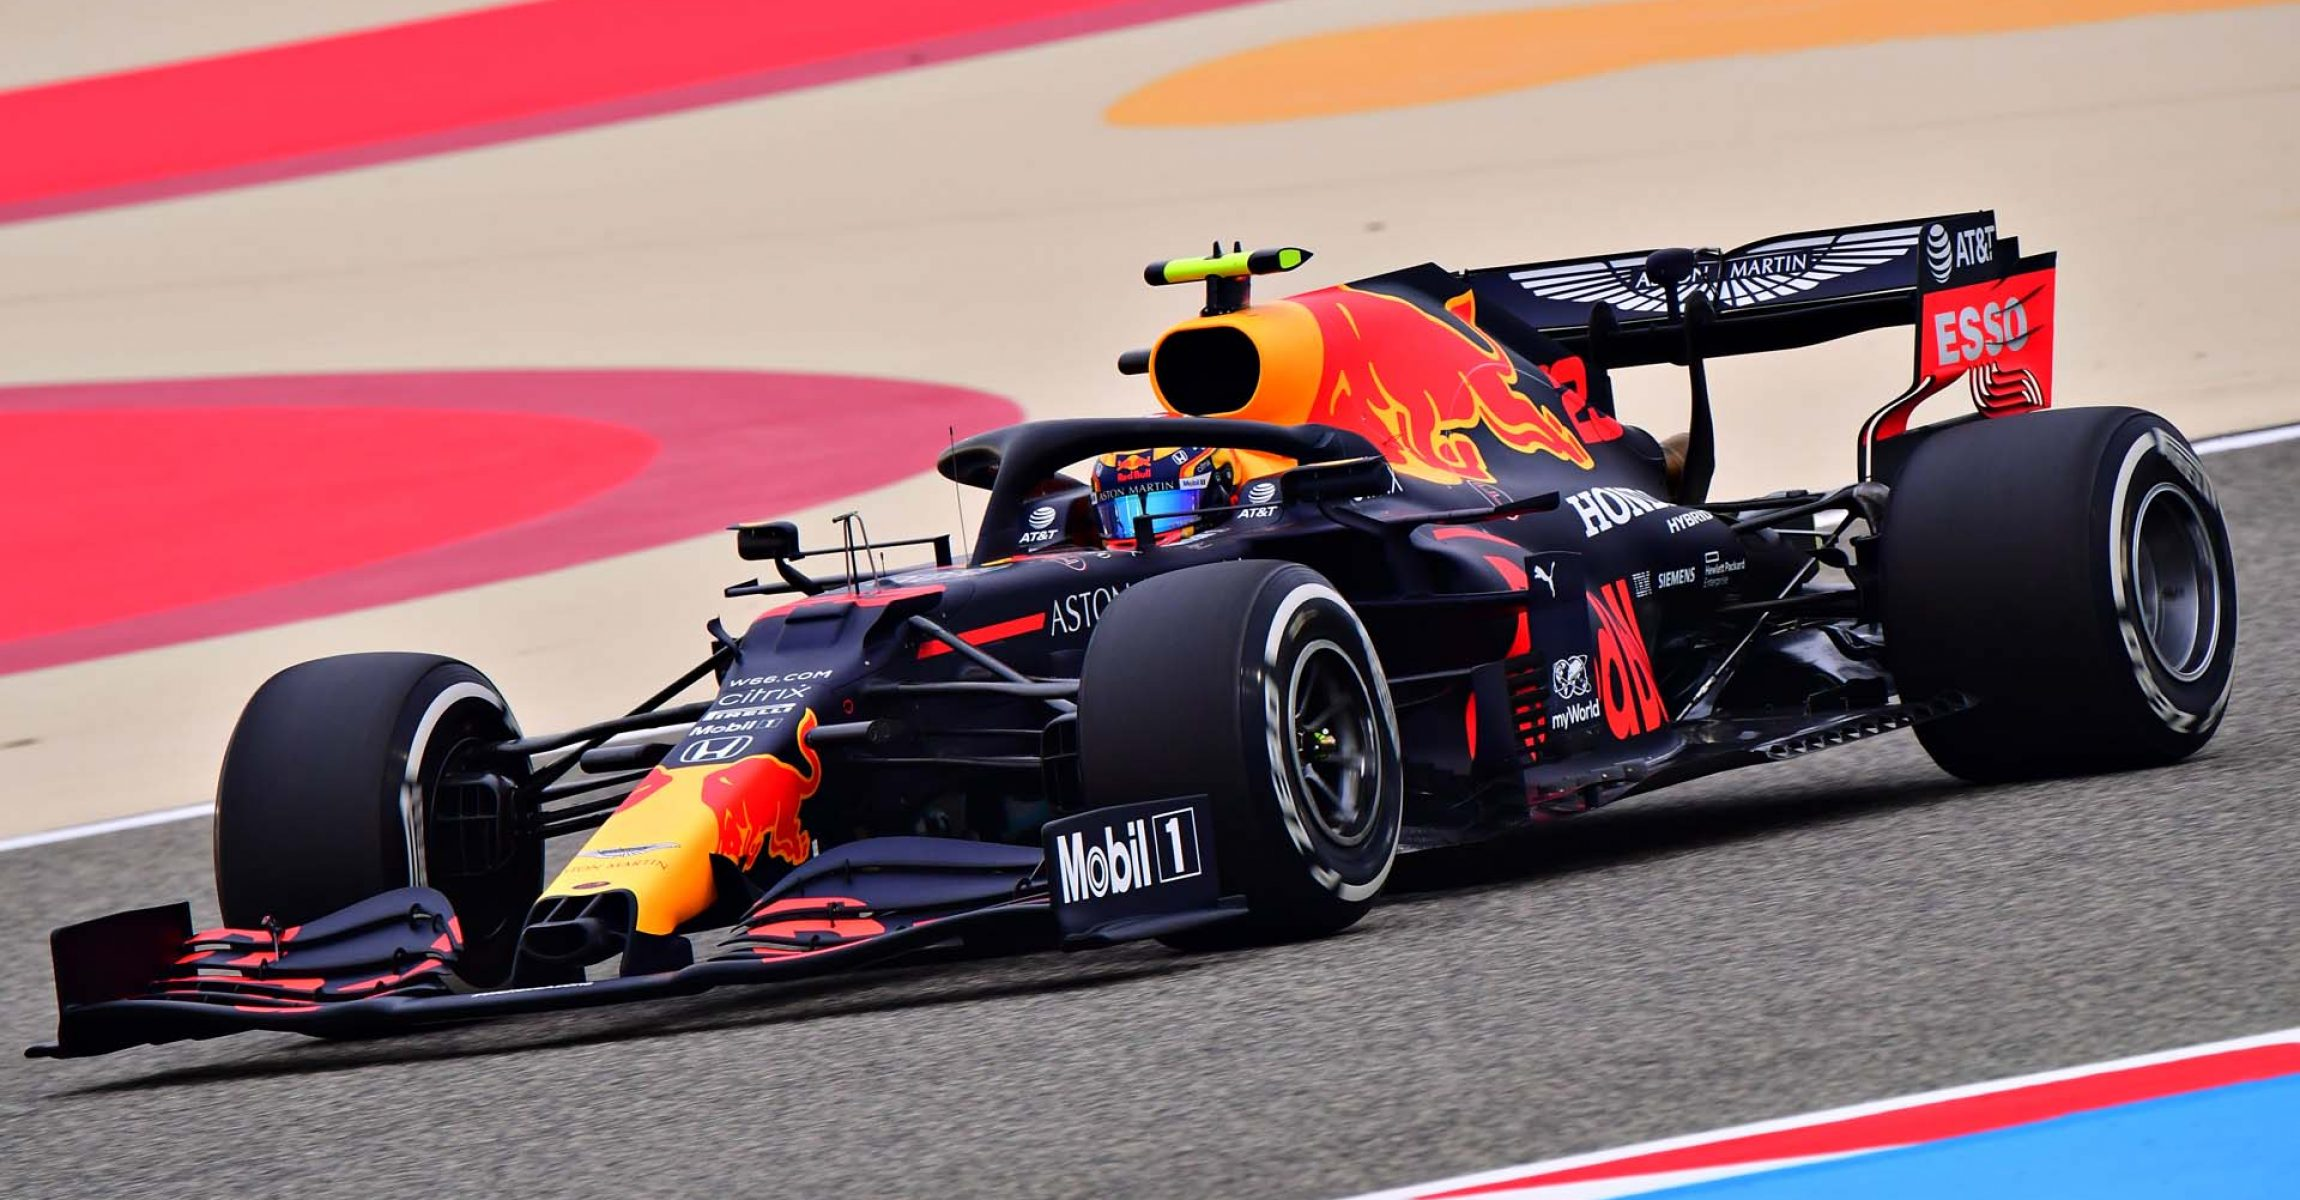 BAHRAIN, BAHRAIN - NOVEMBER 27: Alexander Albon of Thailand driving the (23) Aston Martin Red Bull Racing RB16 during practice ahead of the F1 Grand Prix of Bahrain at Bahrain International Circuit on November 27, 2020 in Bahrain, Bahrain. (Photo by Giuseppe Cacace - Pool/Getty Images)